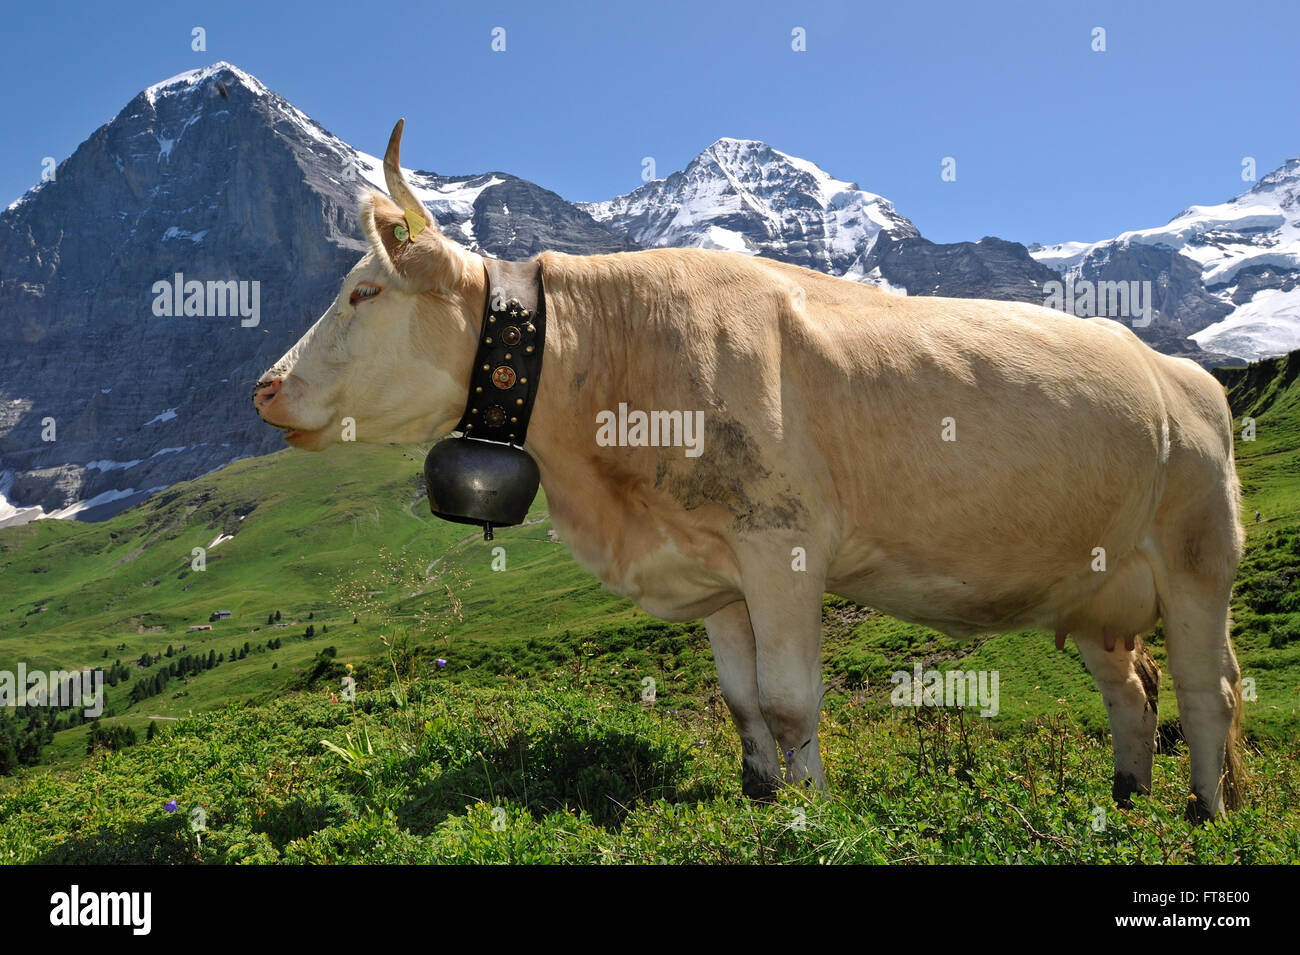 Portrait of brown Alpine cow (Bos taurus) with cowbell in alpine meadow, Swiss Alps, Switzerland - Stock Image